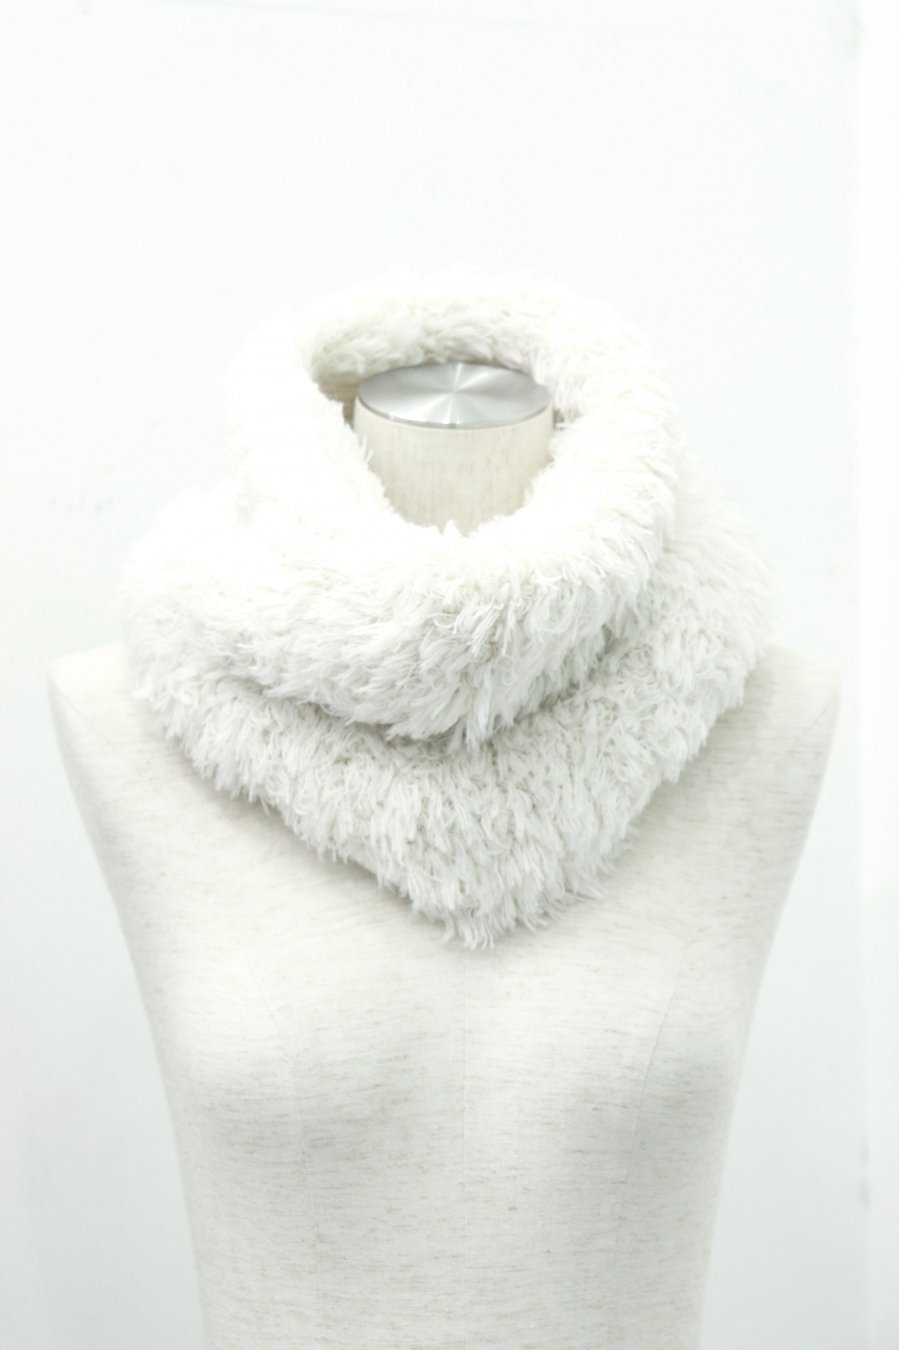 LITTLEBIG  SNOOD(WHITE)<img class='new_mark_img2' src='https://img.shop-pro.jp/img/new/icons15.gif' style='border:none;display:inline;margin:0px;padding:0px;width:auto;' />